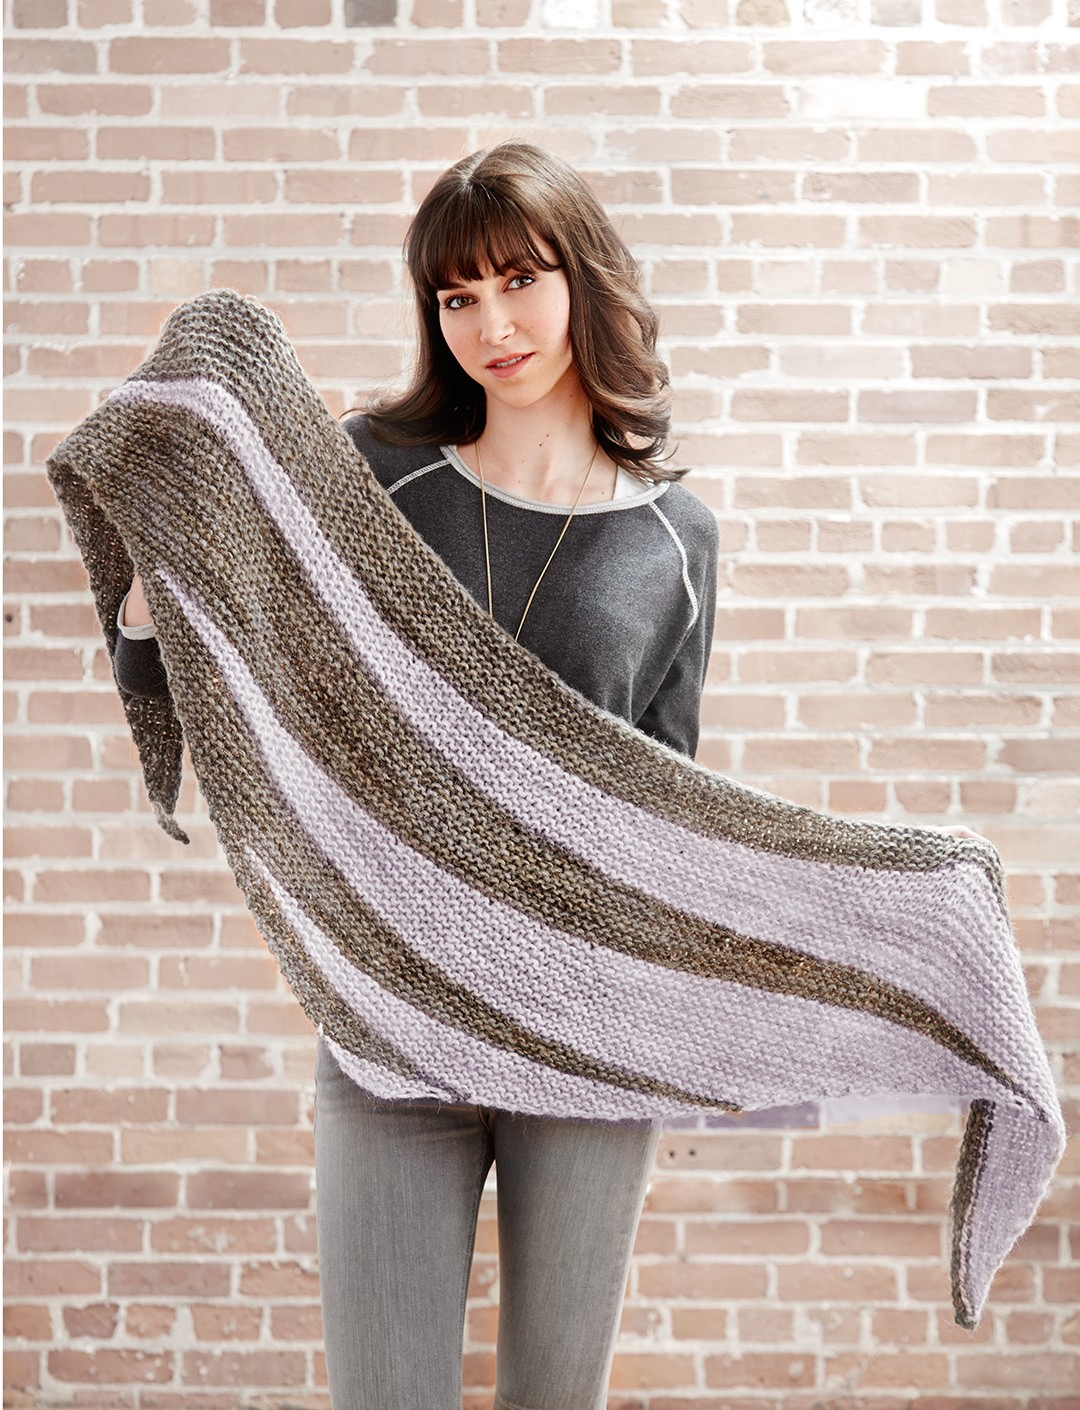 Free Triangle Scarf Knitting Pattern : Free Pattern Friday: Knit Shawl Pattern from Yarnspirations - Stitch and Unwind